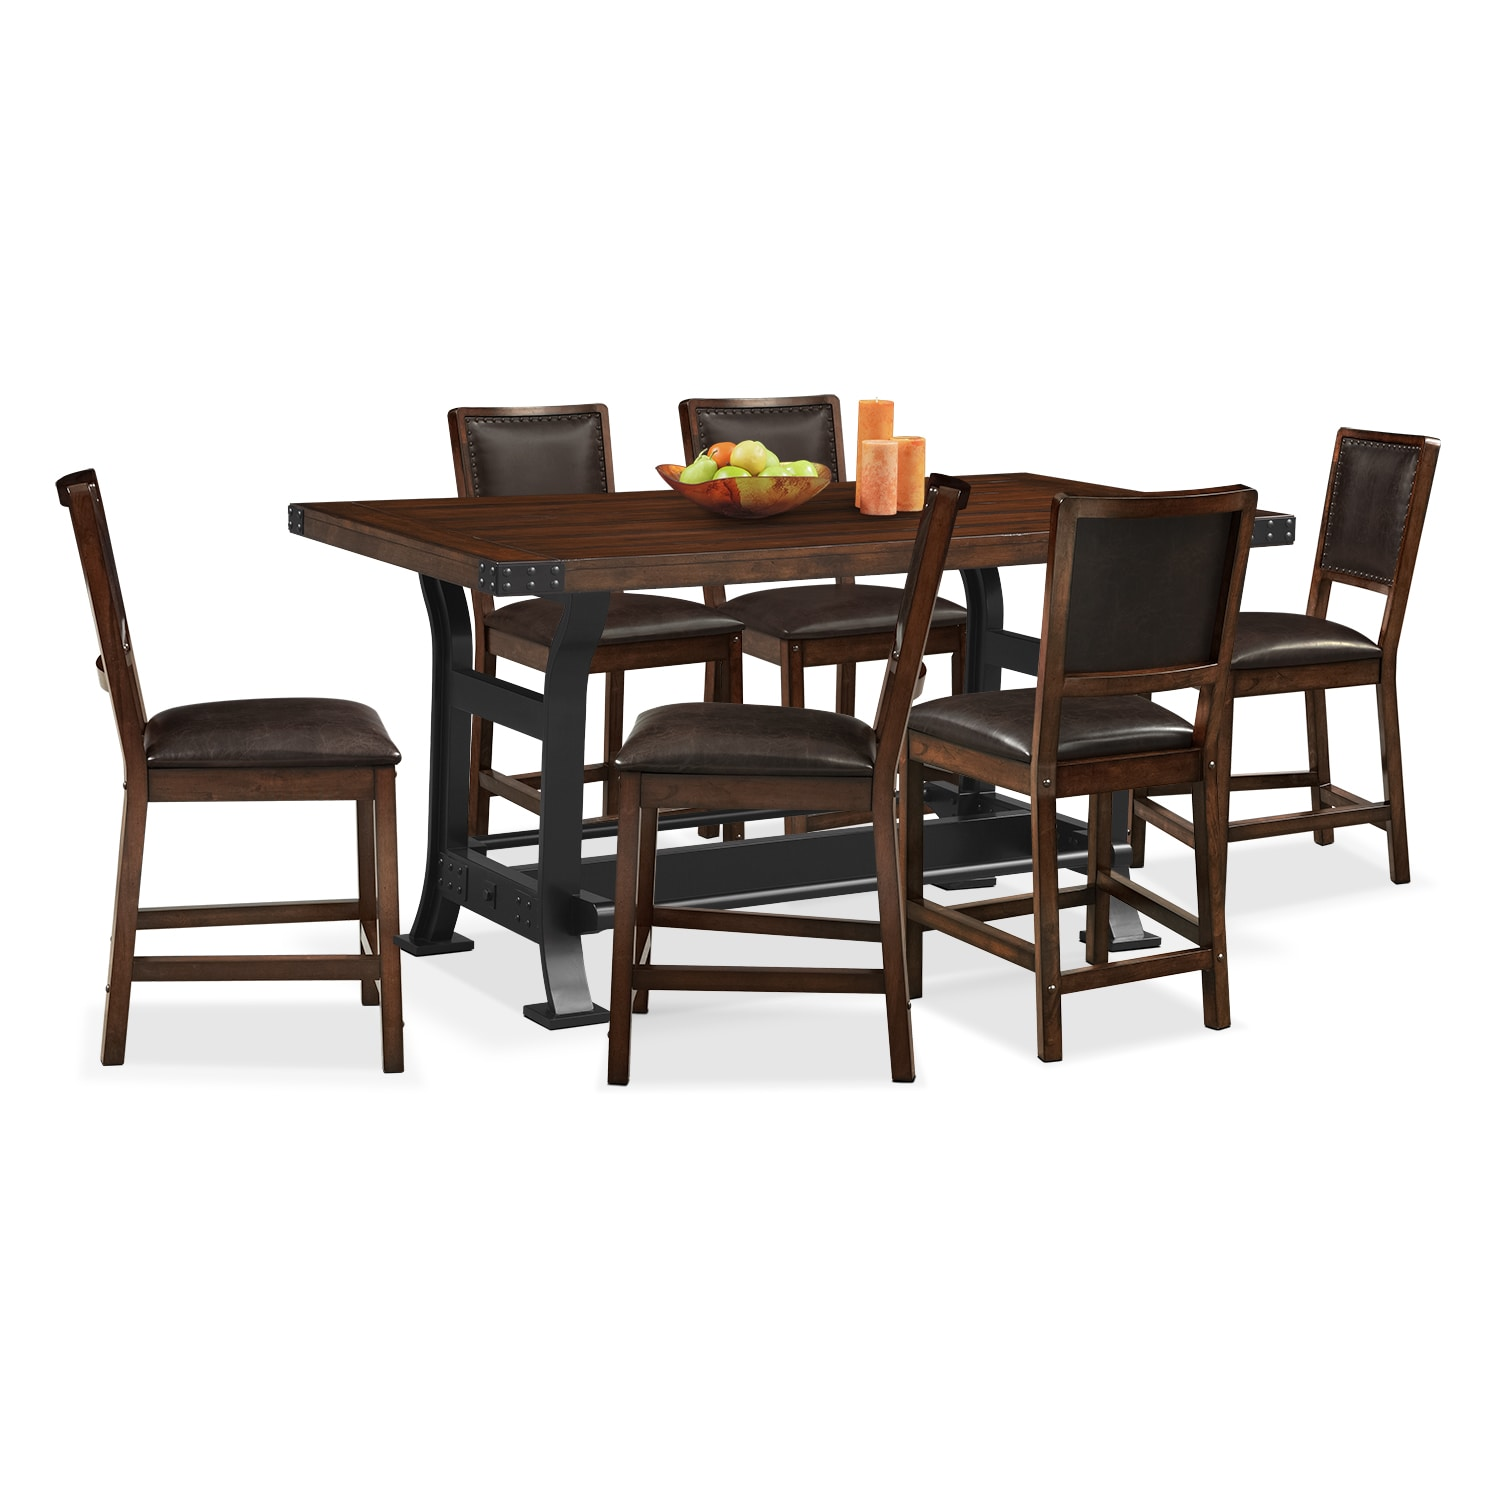 Newcastle counter height dining table and 6 side chairs for Dining table size for 6